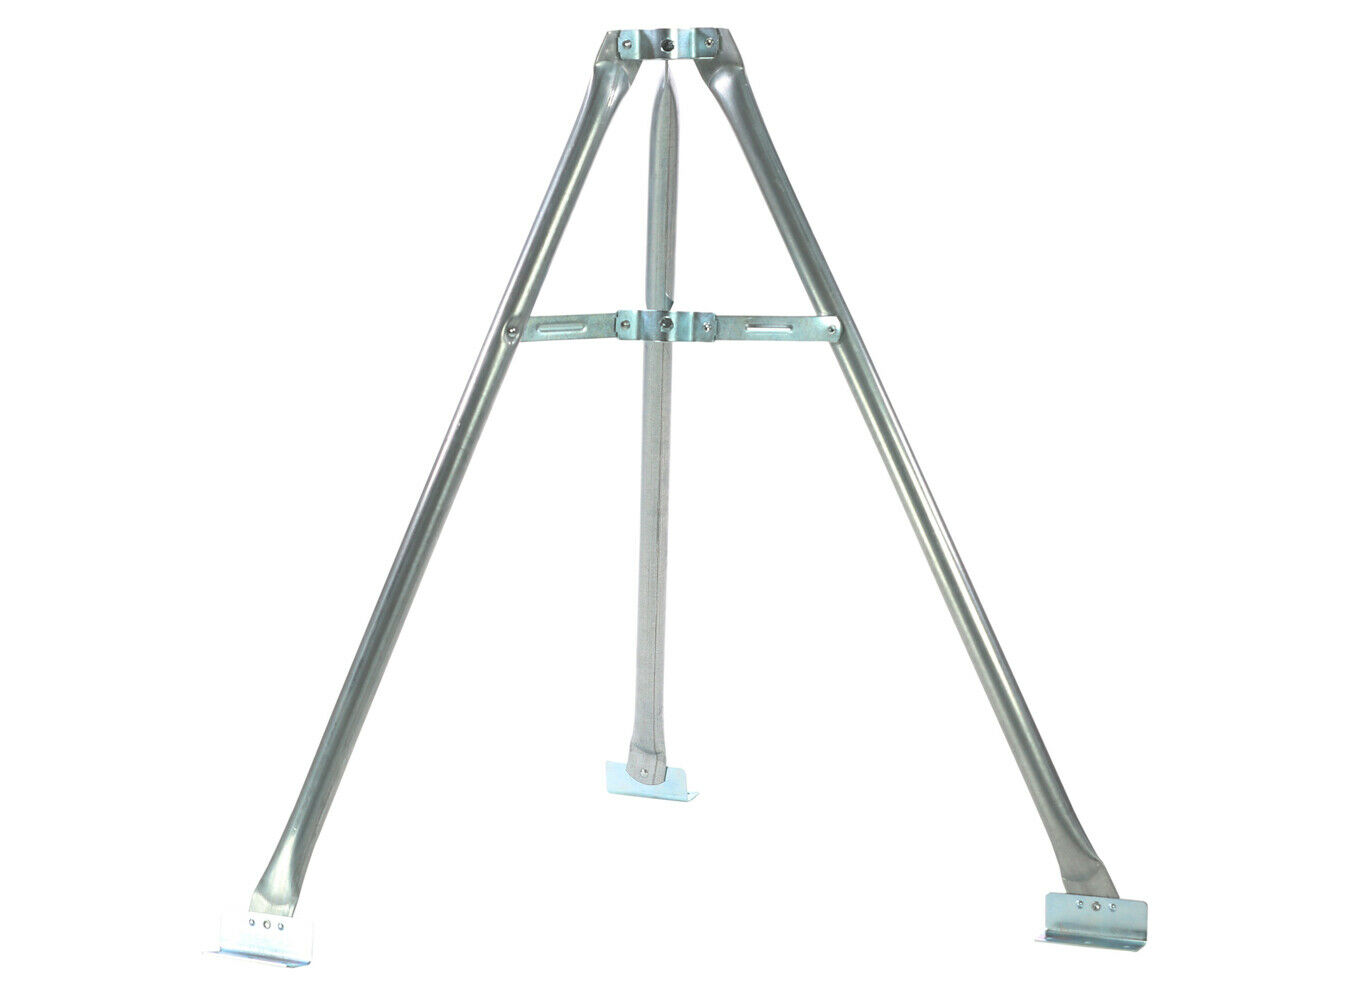 Channel Master TV Antenna Tripod Mount 3 FT Collapsible Heavy Duty Steel CM-3092. Available Now for 59.00